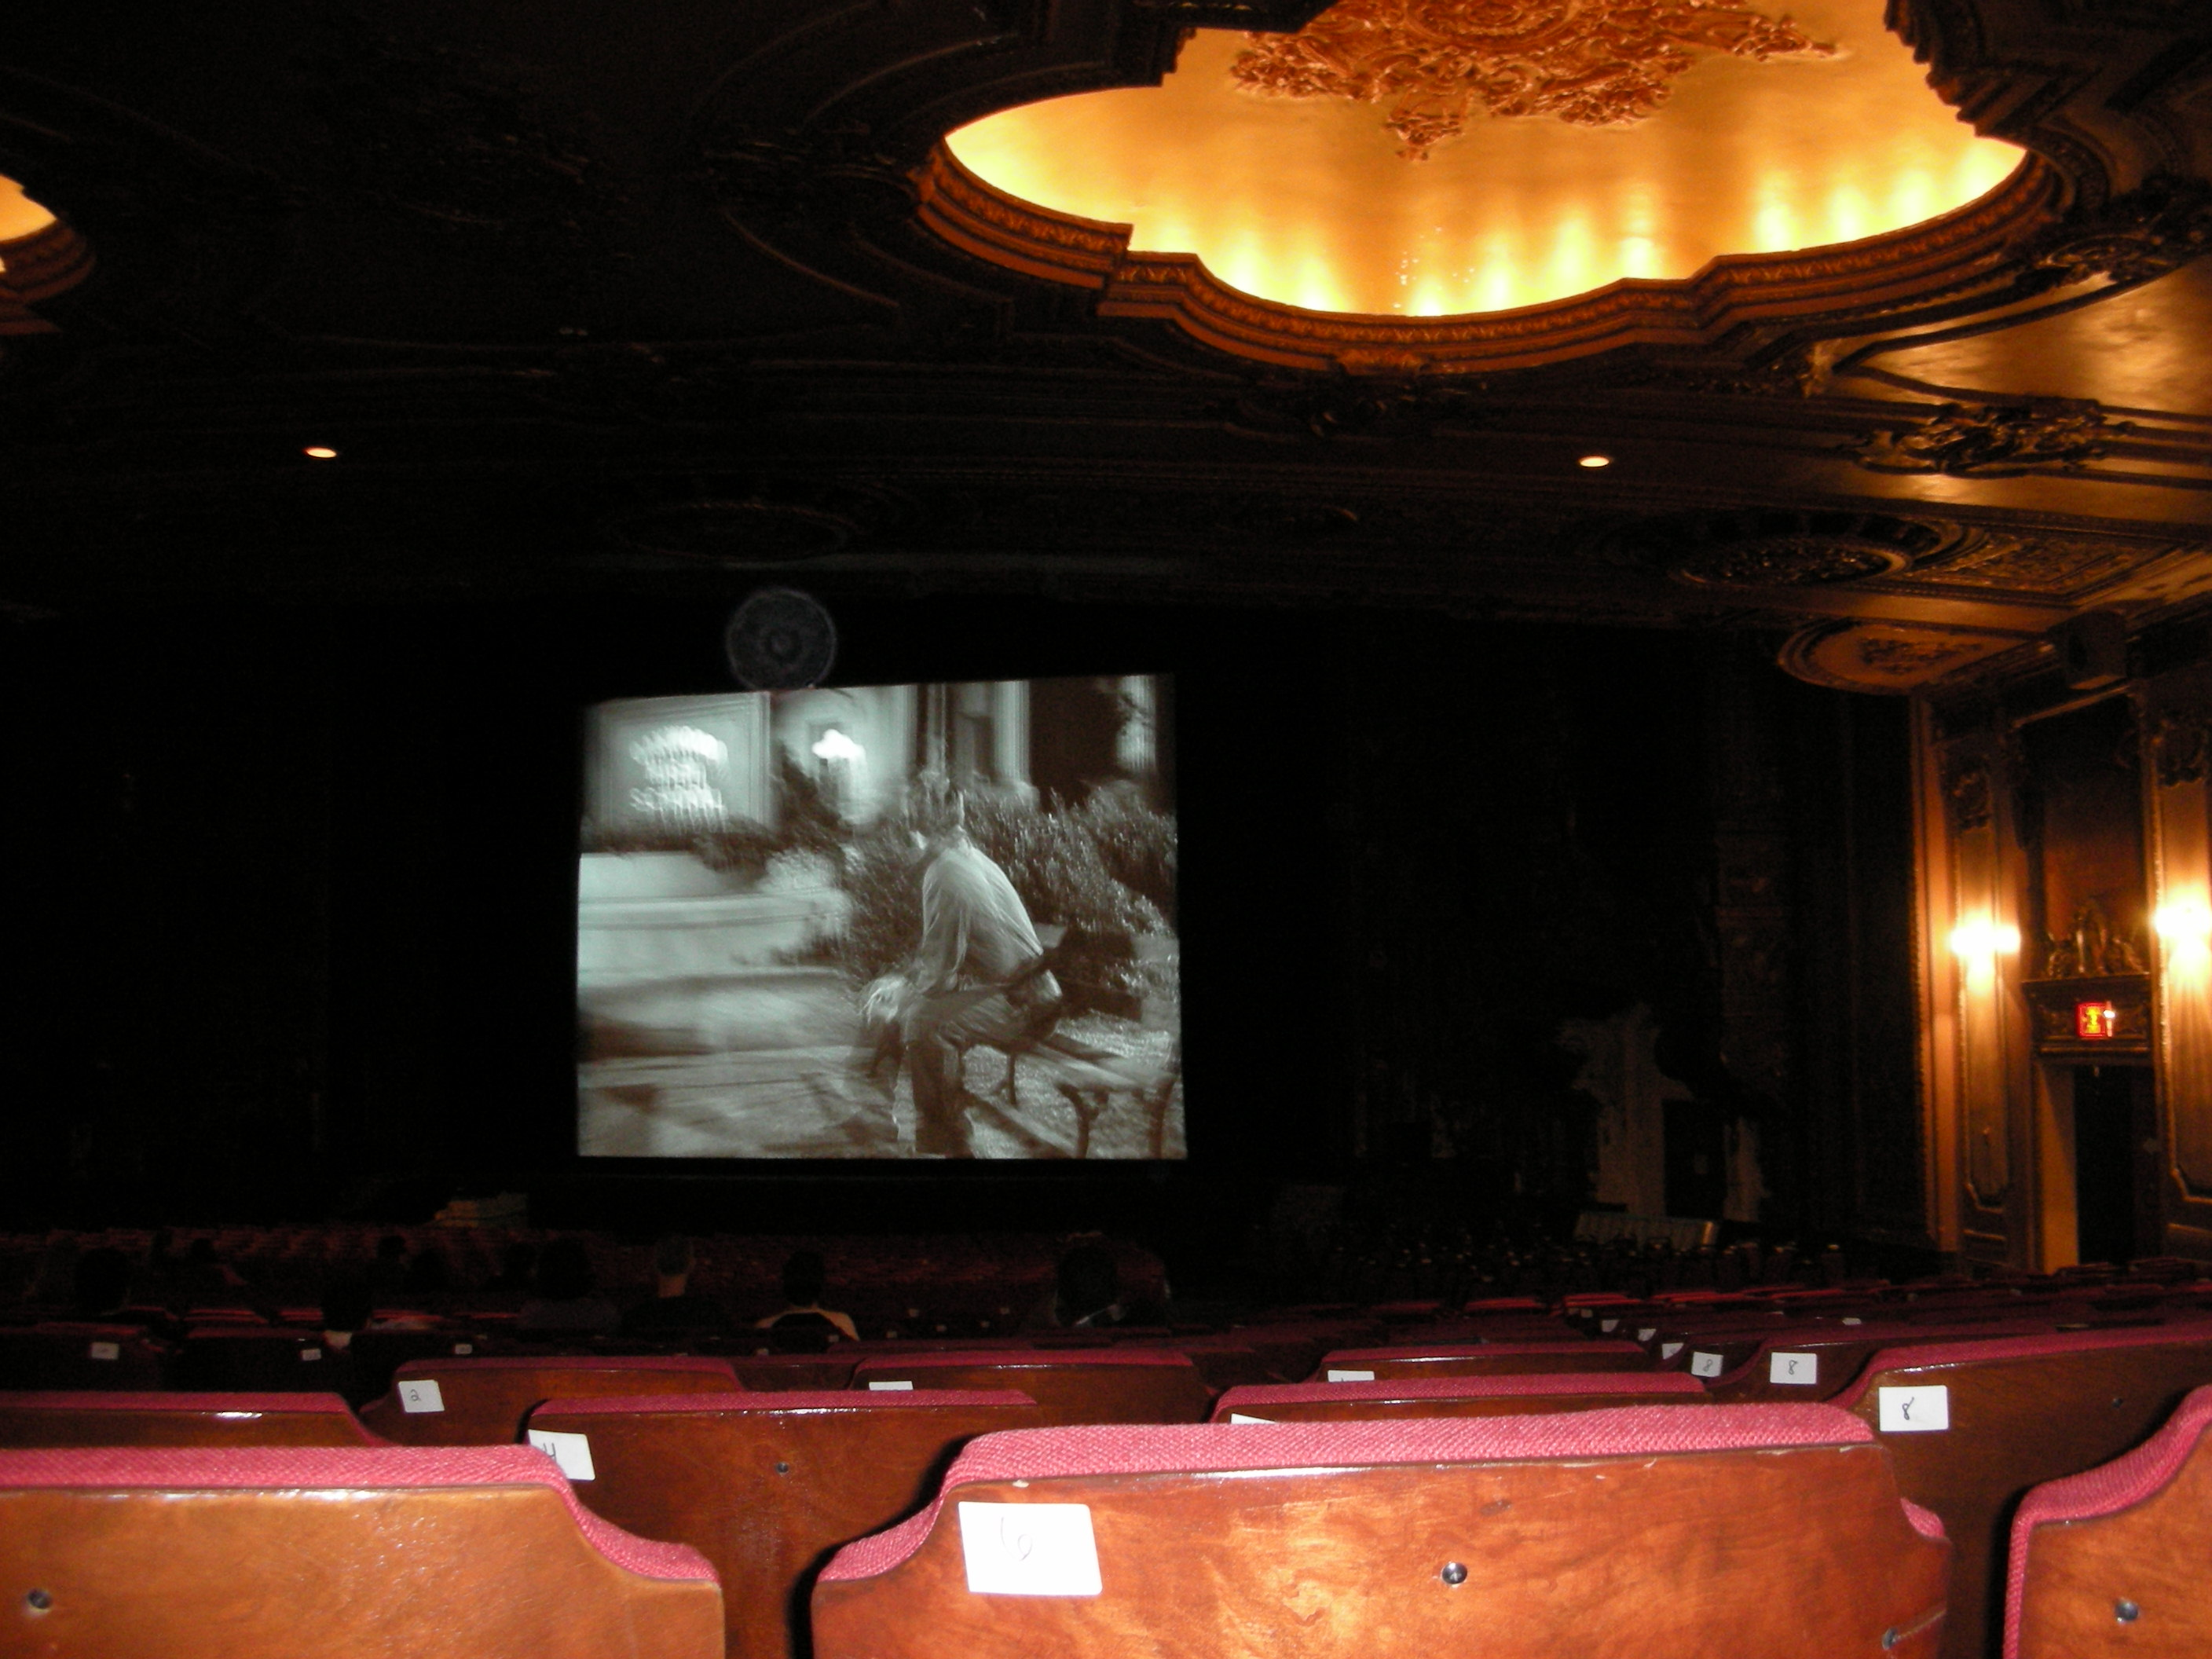 Inside the Theatre with THE TWILIGHT ZONE